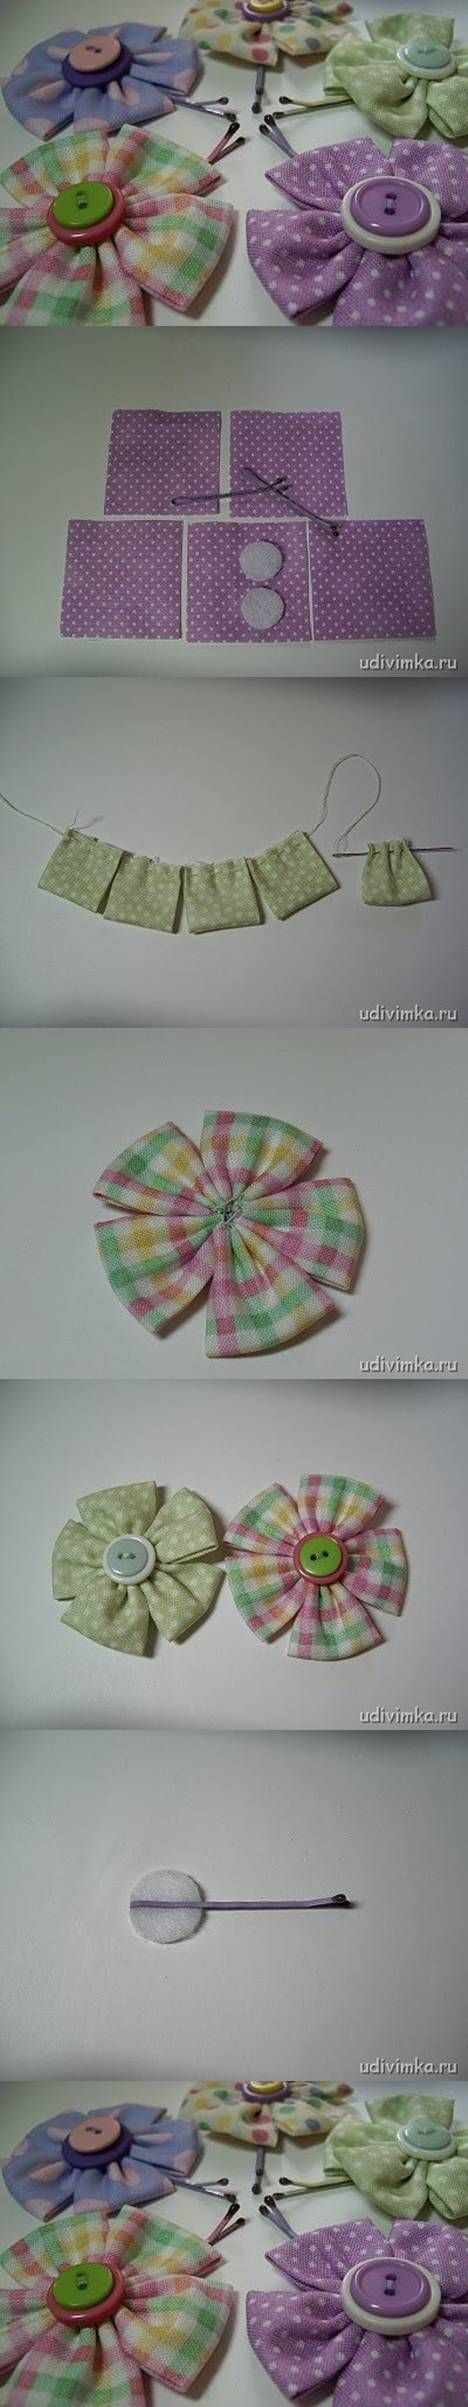 DIY Cute Fabric Flower Hairpin DIY Projects / UsefulDIY.com